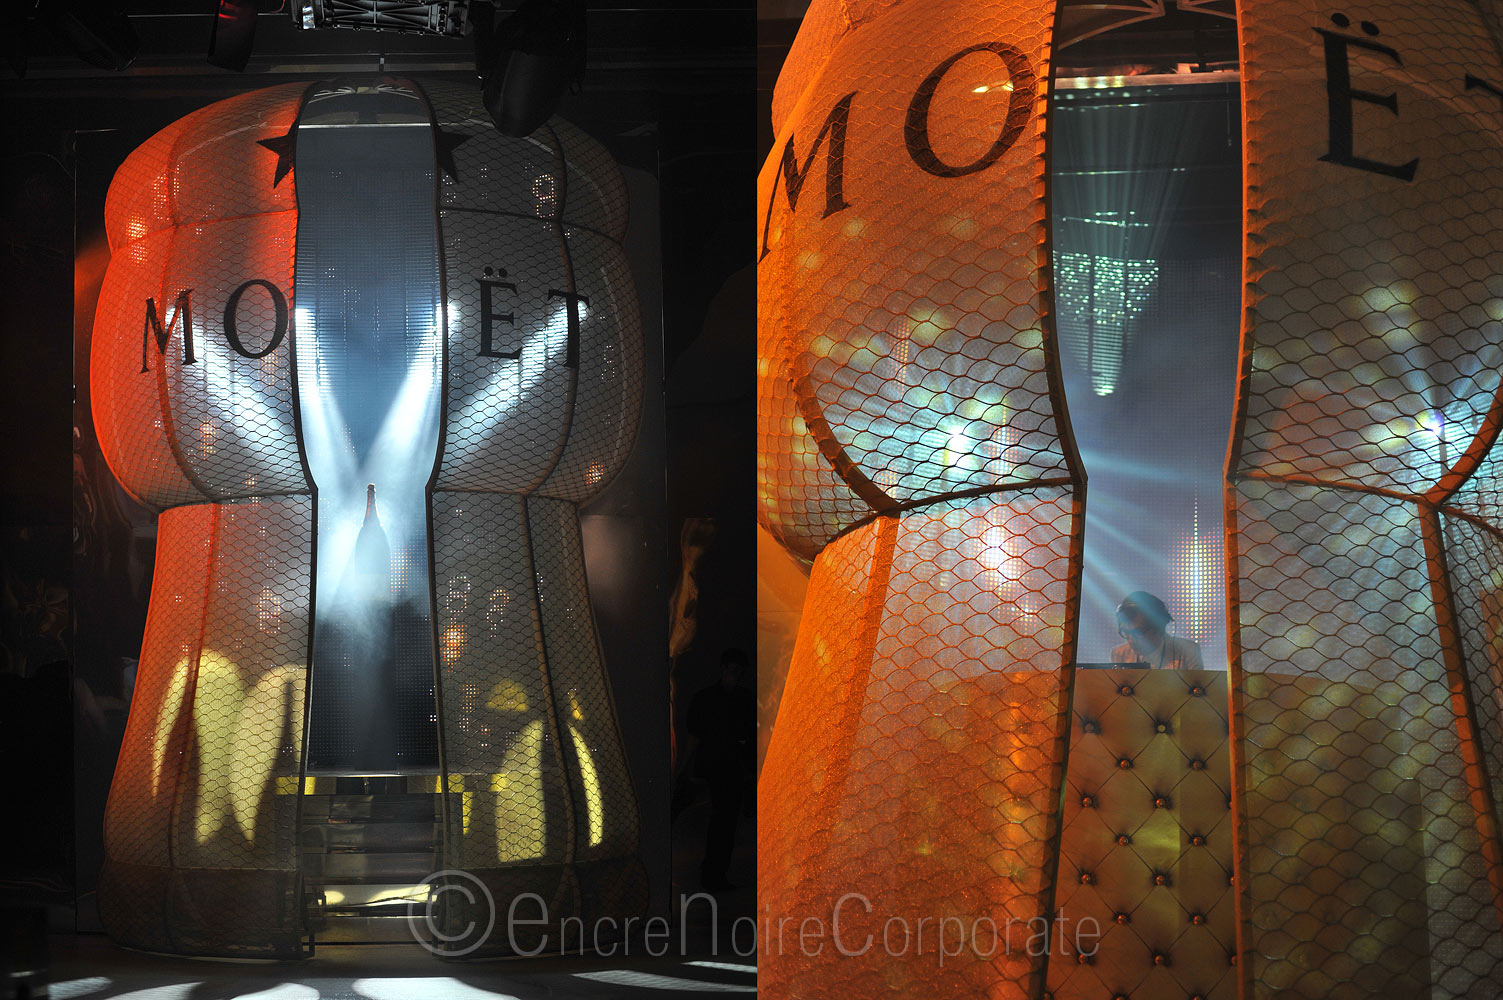 Moet et Chandon event London